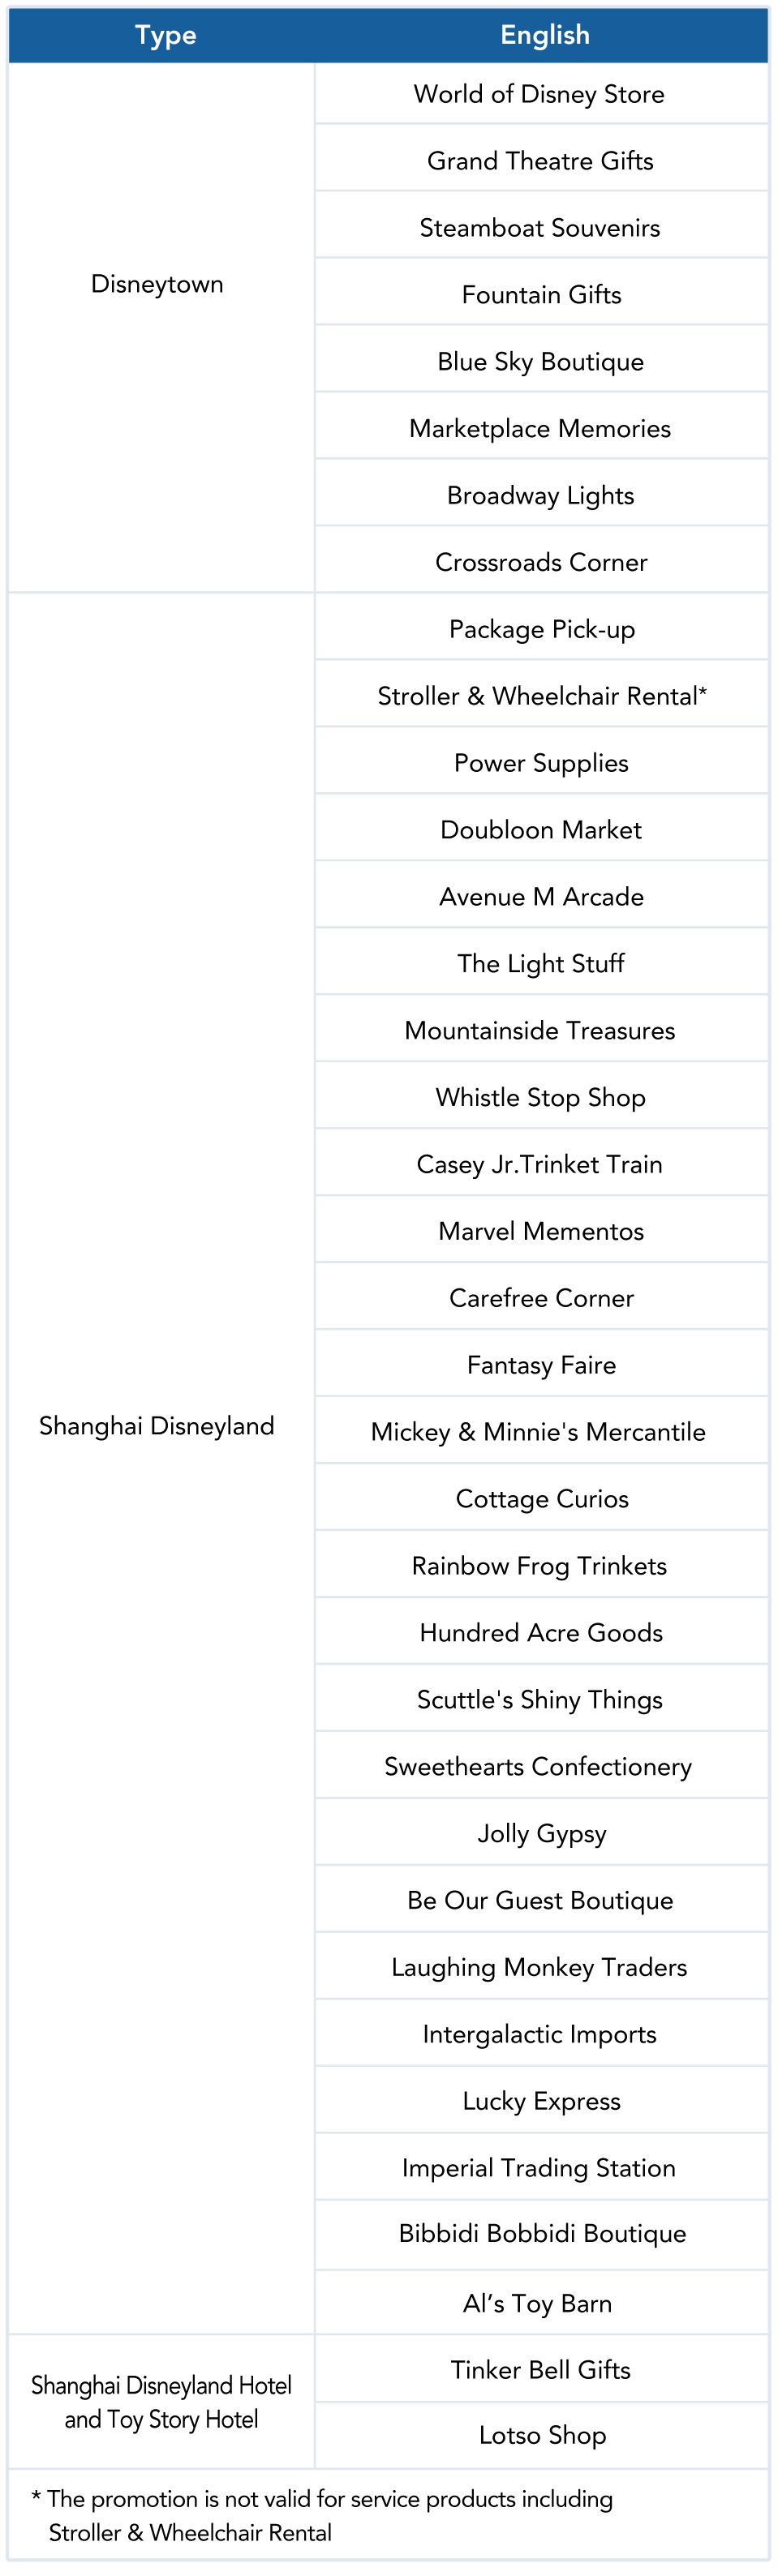 it cannot be redeemed at outdoor vending carts for selected products or at the shanghai disney resort store hongqiao airport